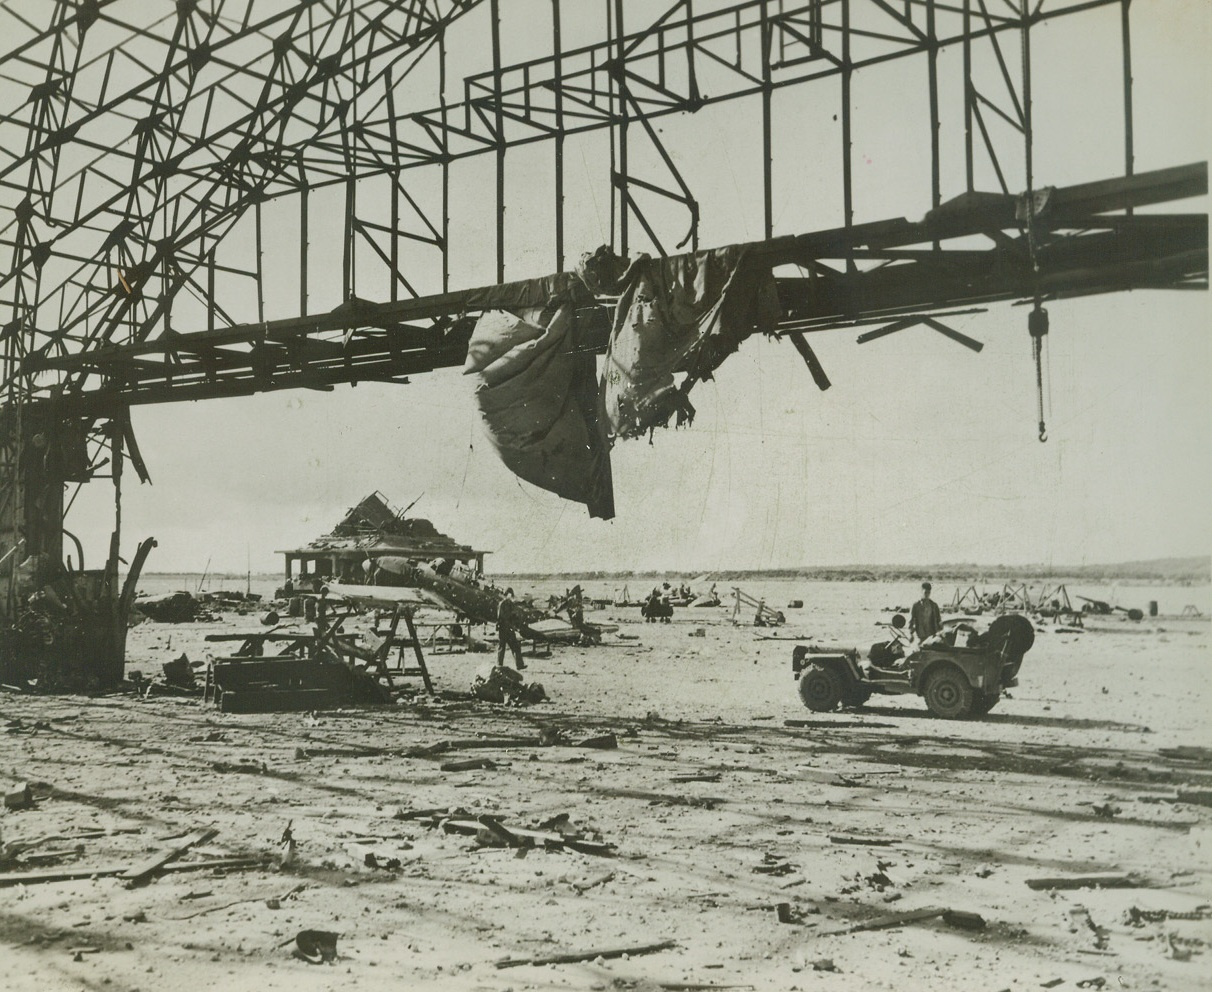 After Yank Bombardment, 8/11/1944. TINIAN – Pre-invasion naval and aerial bombardment completely shattered enemy installations and equipment at this Jap airport on the Northern end of Tinian. Marine forces captured the field shortly after hitting the beach and reconstruction of the strip is already underway. Credit: Marine Corps photo from ACME;